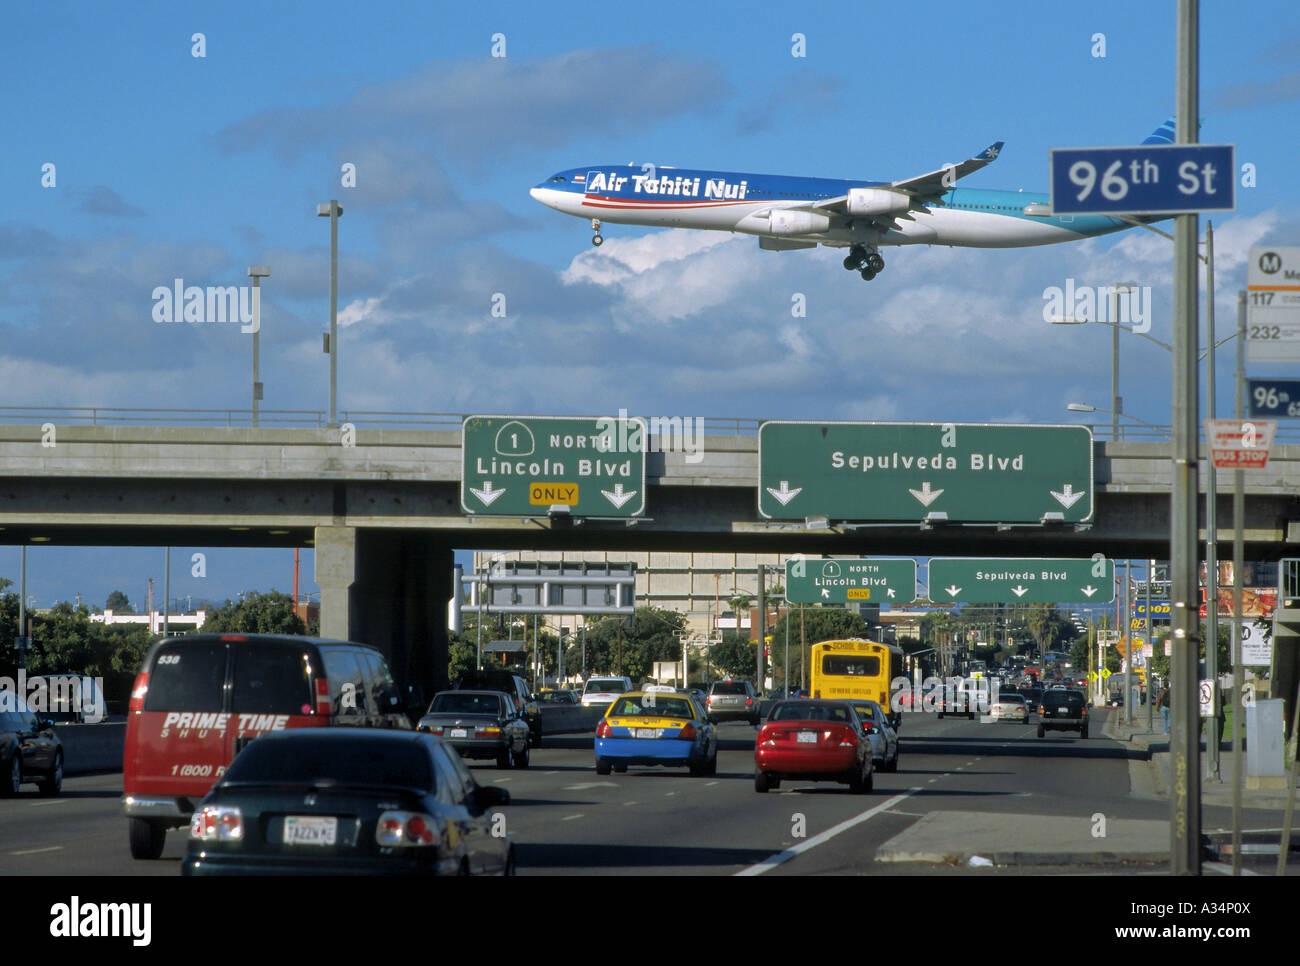 An Airbus 340-600 series widebody jet operated by Air Tahiti Nui crosses the Sepulveda Boulevard seconds before - Stock Image